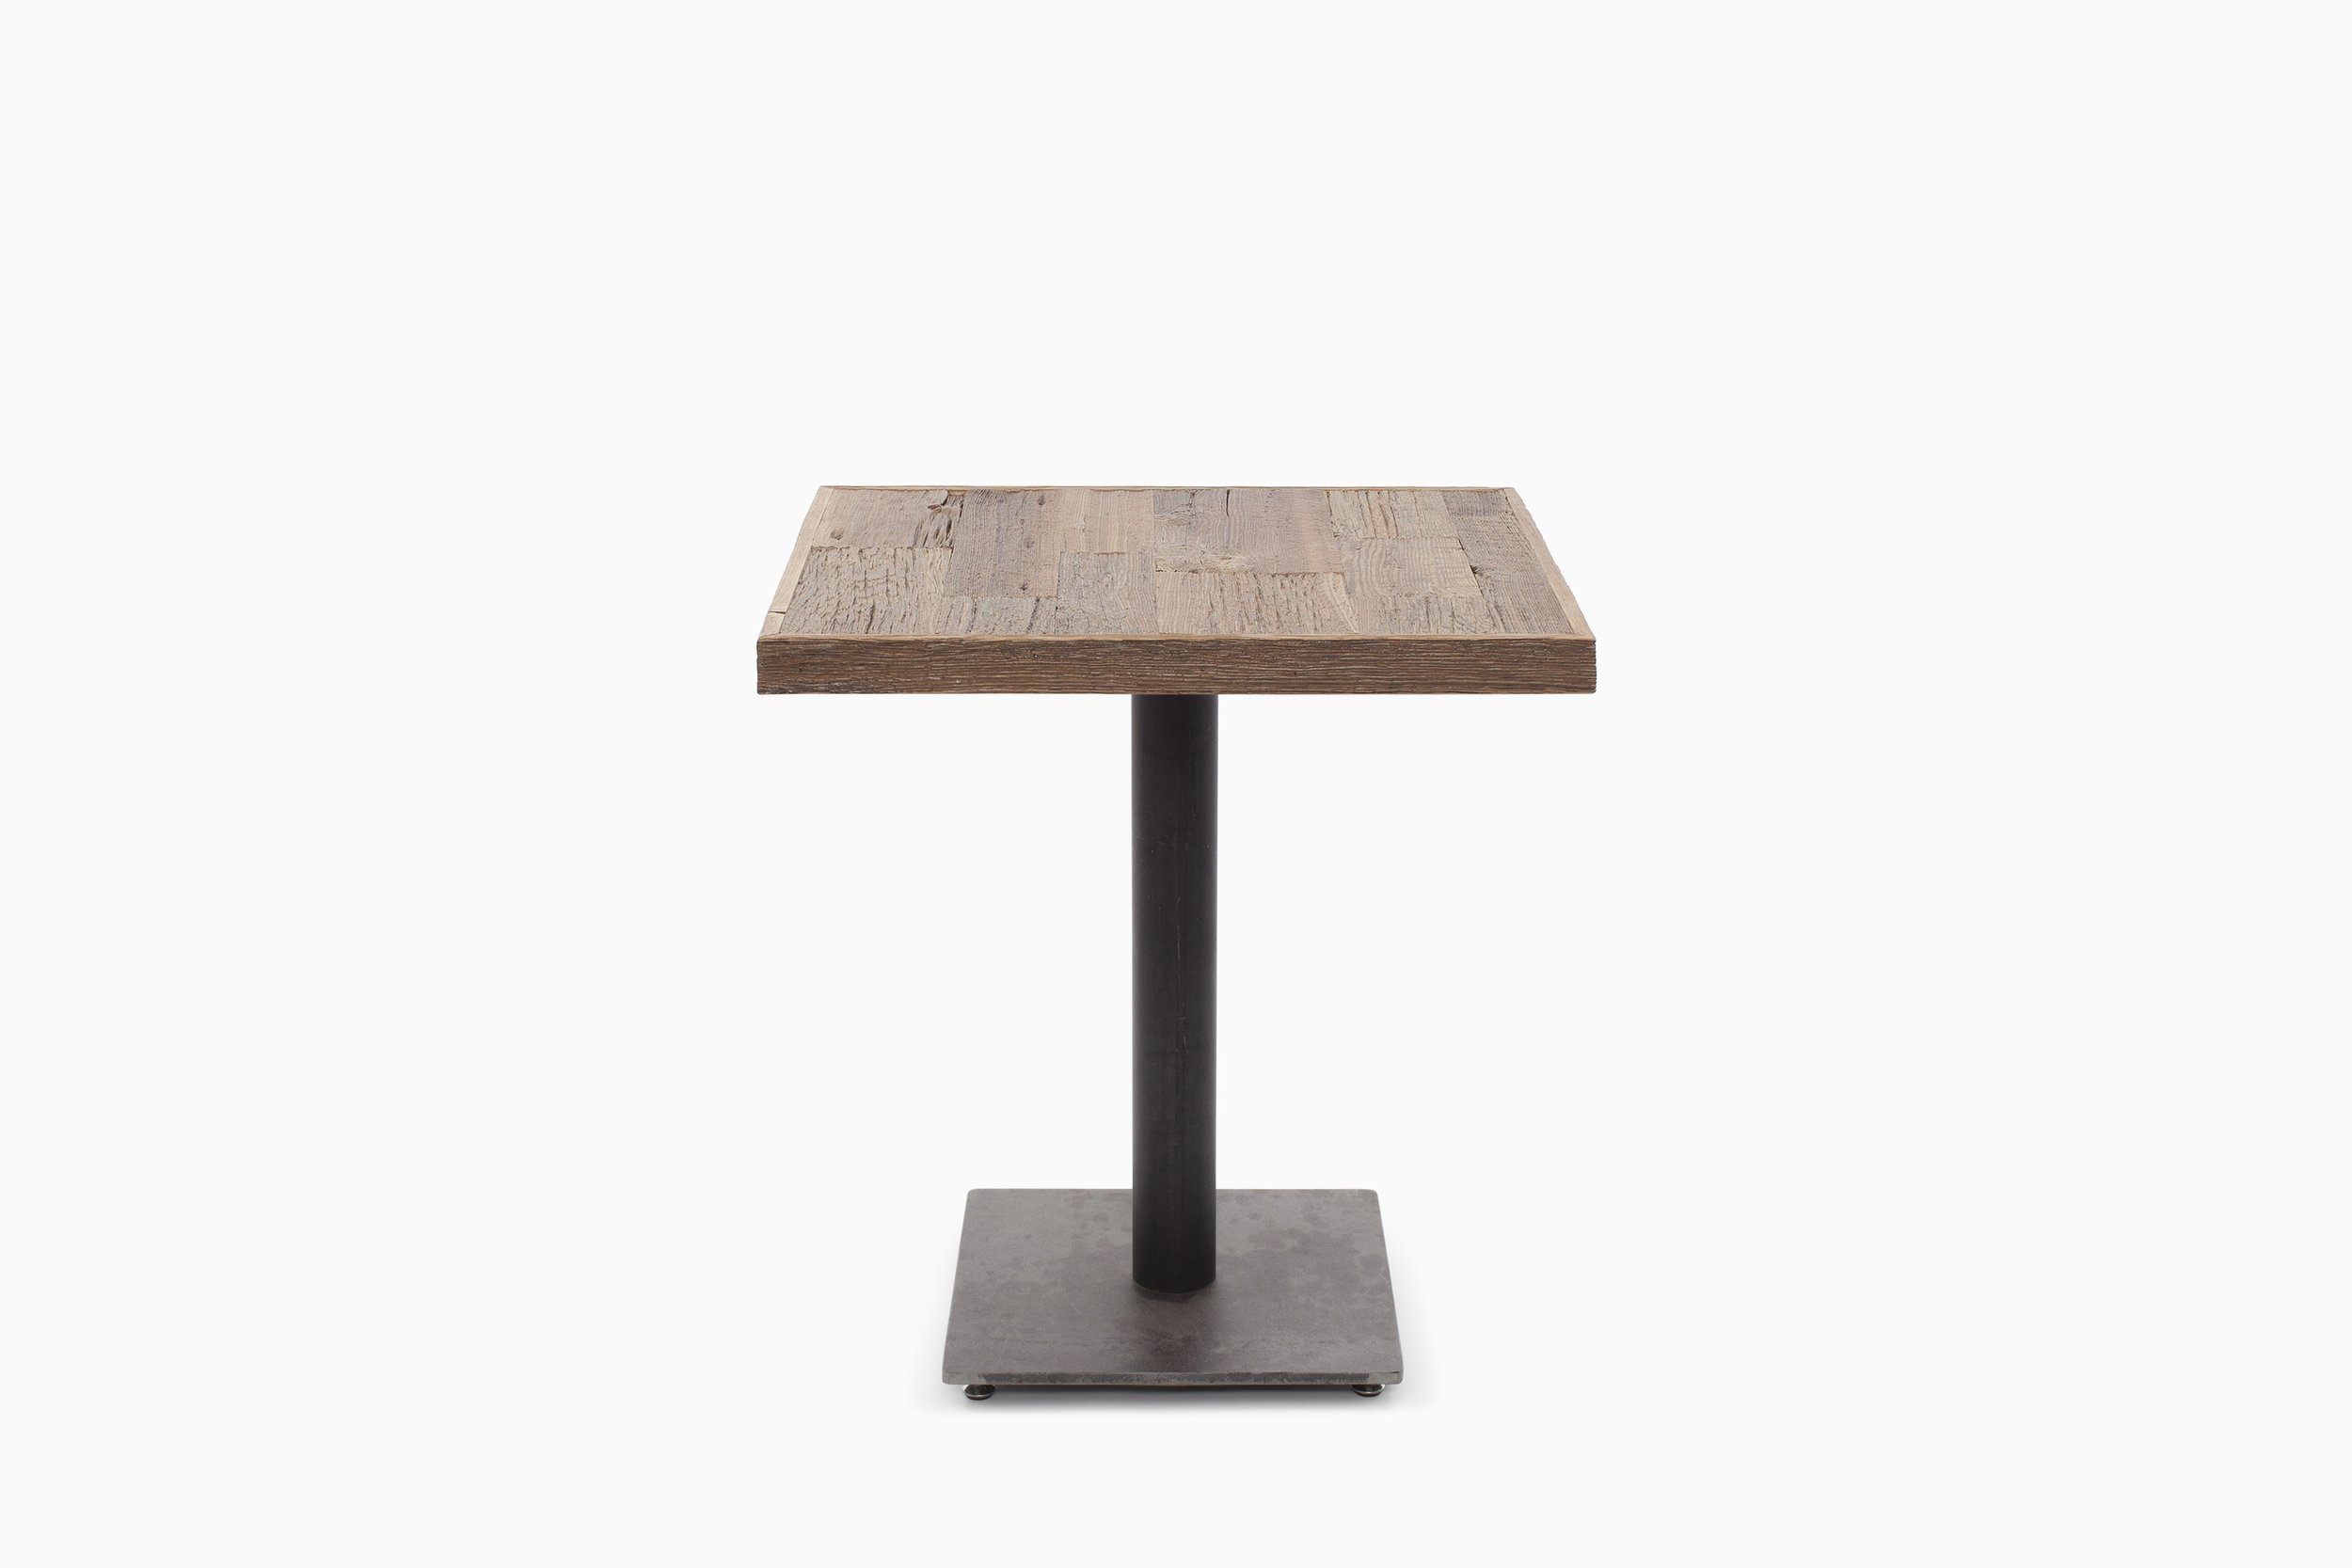 TIMBER_TABLE_BISTROT_02.01.jpg